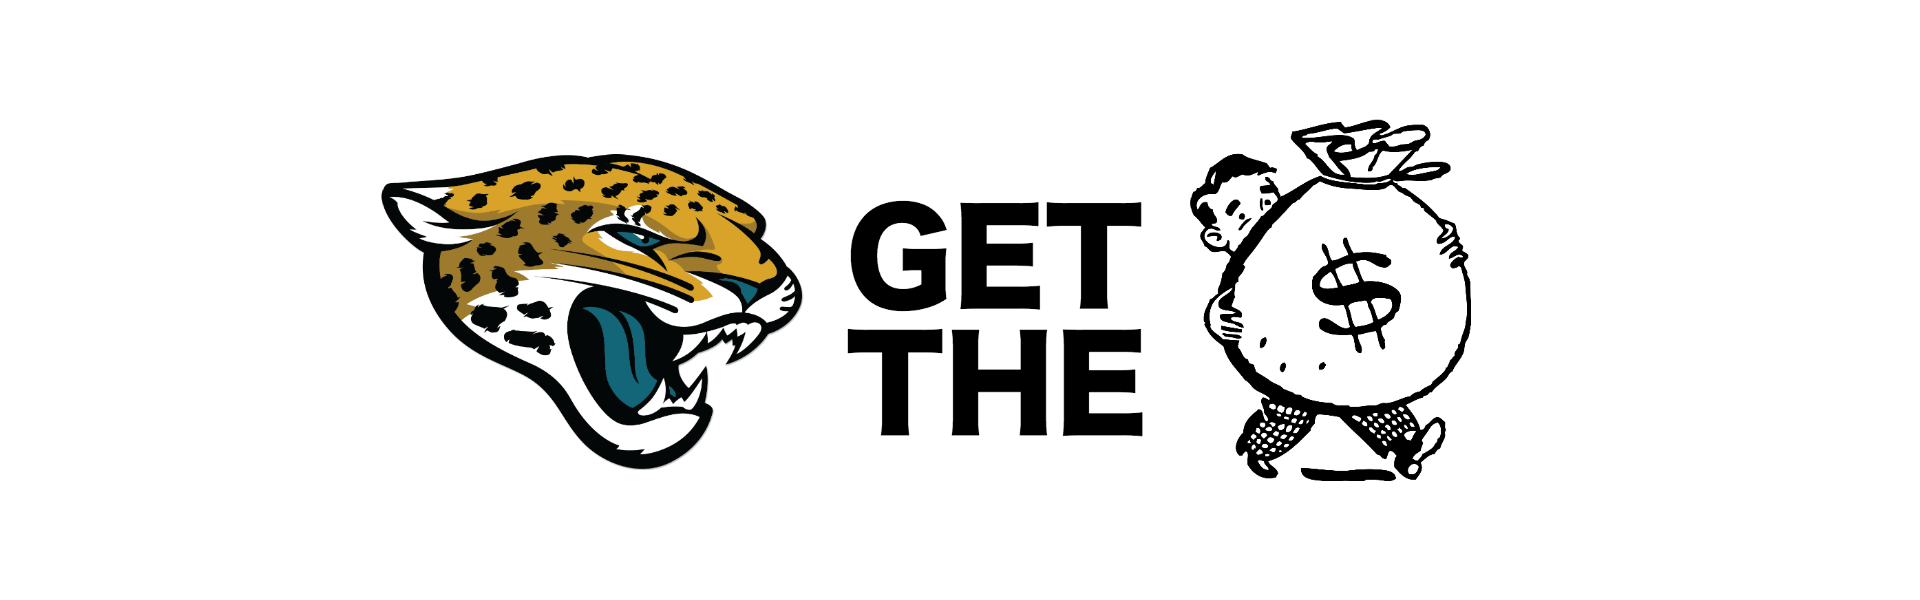 1920x600 The Best Jacksonville Jaguars 2017 Playoff Shirt